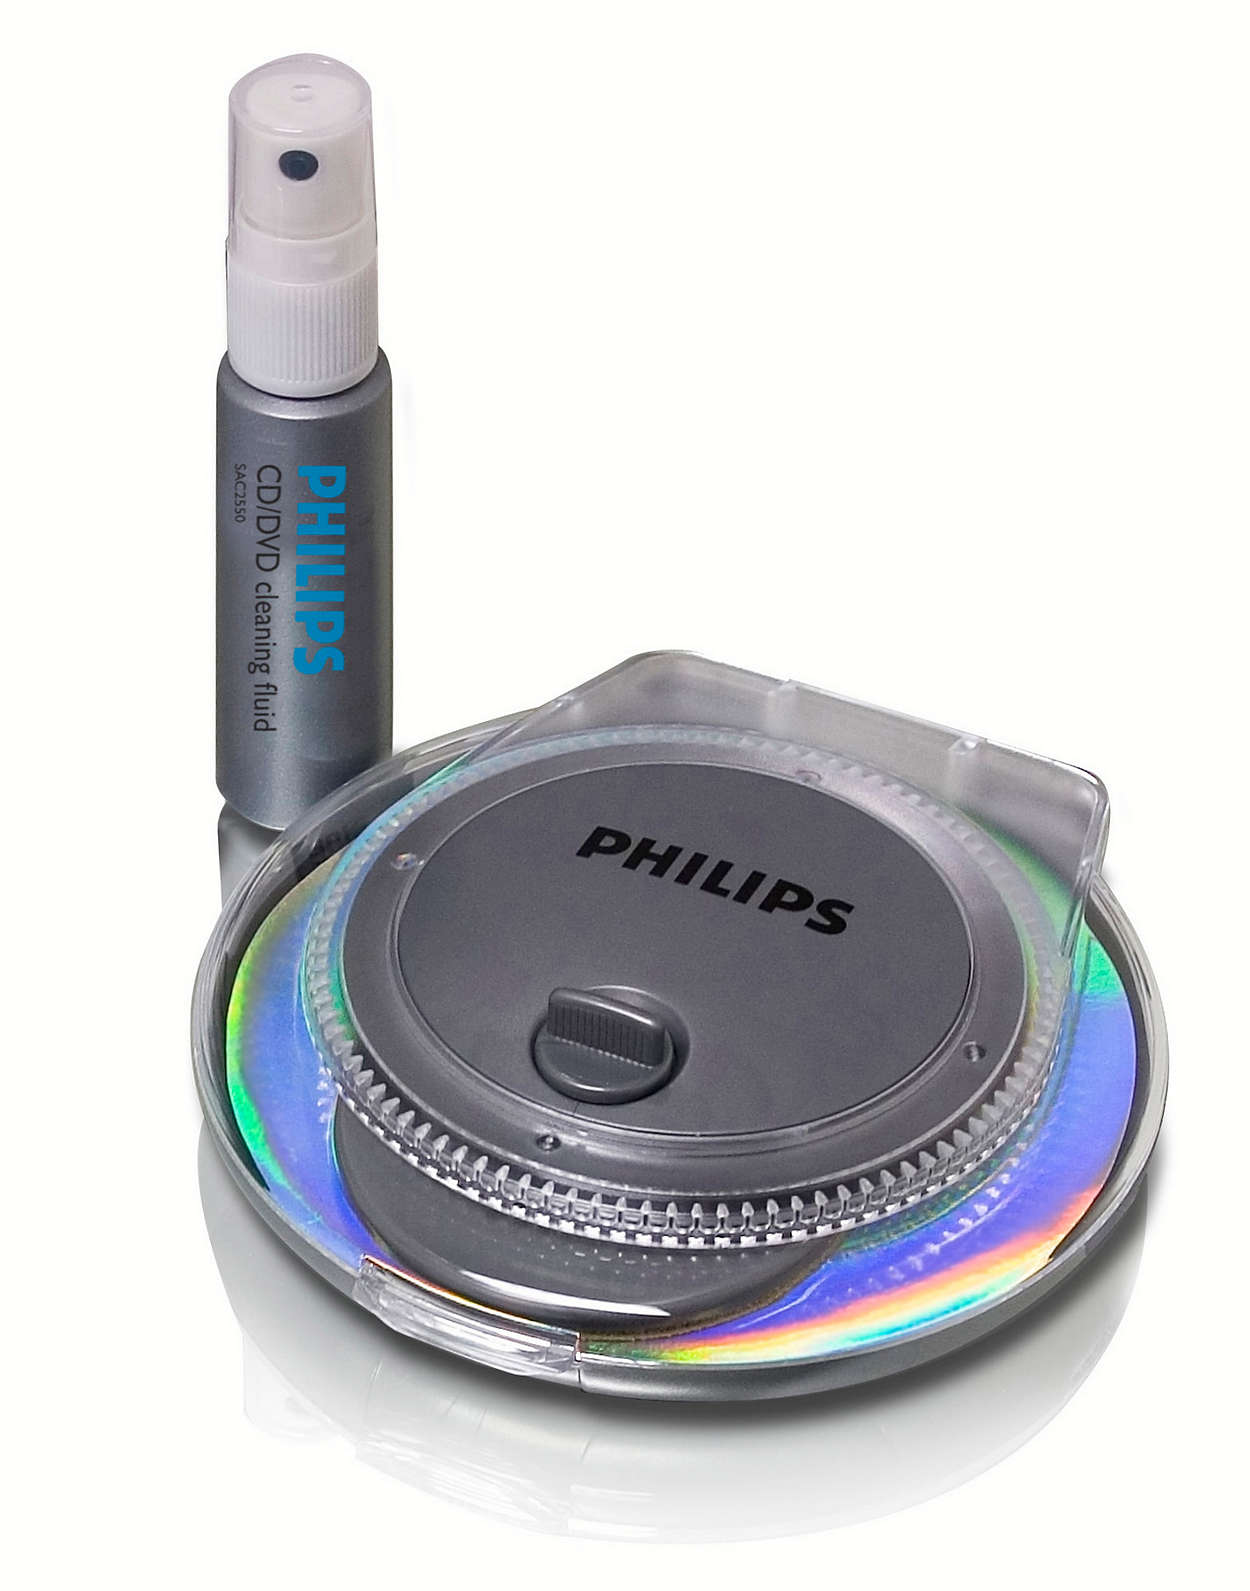 Car Cd Player Cleaner Reviews